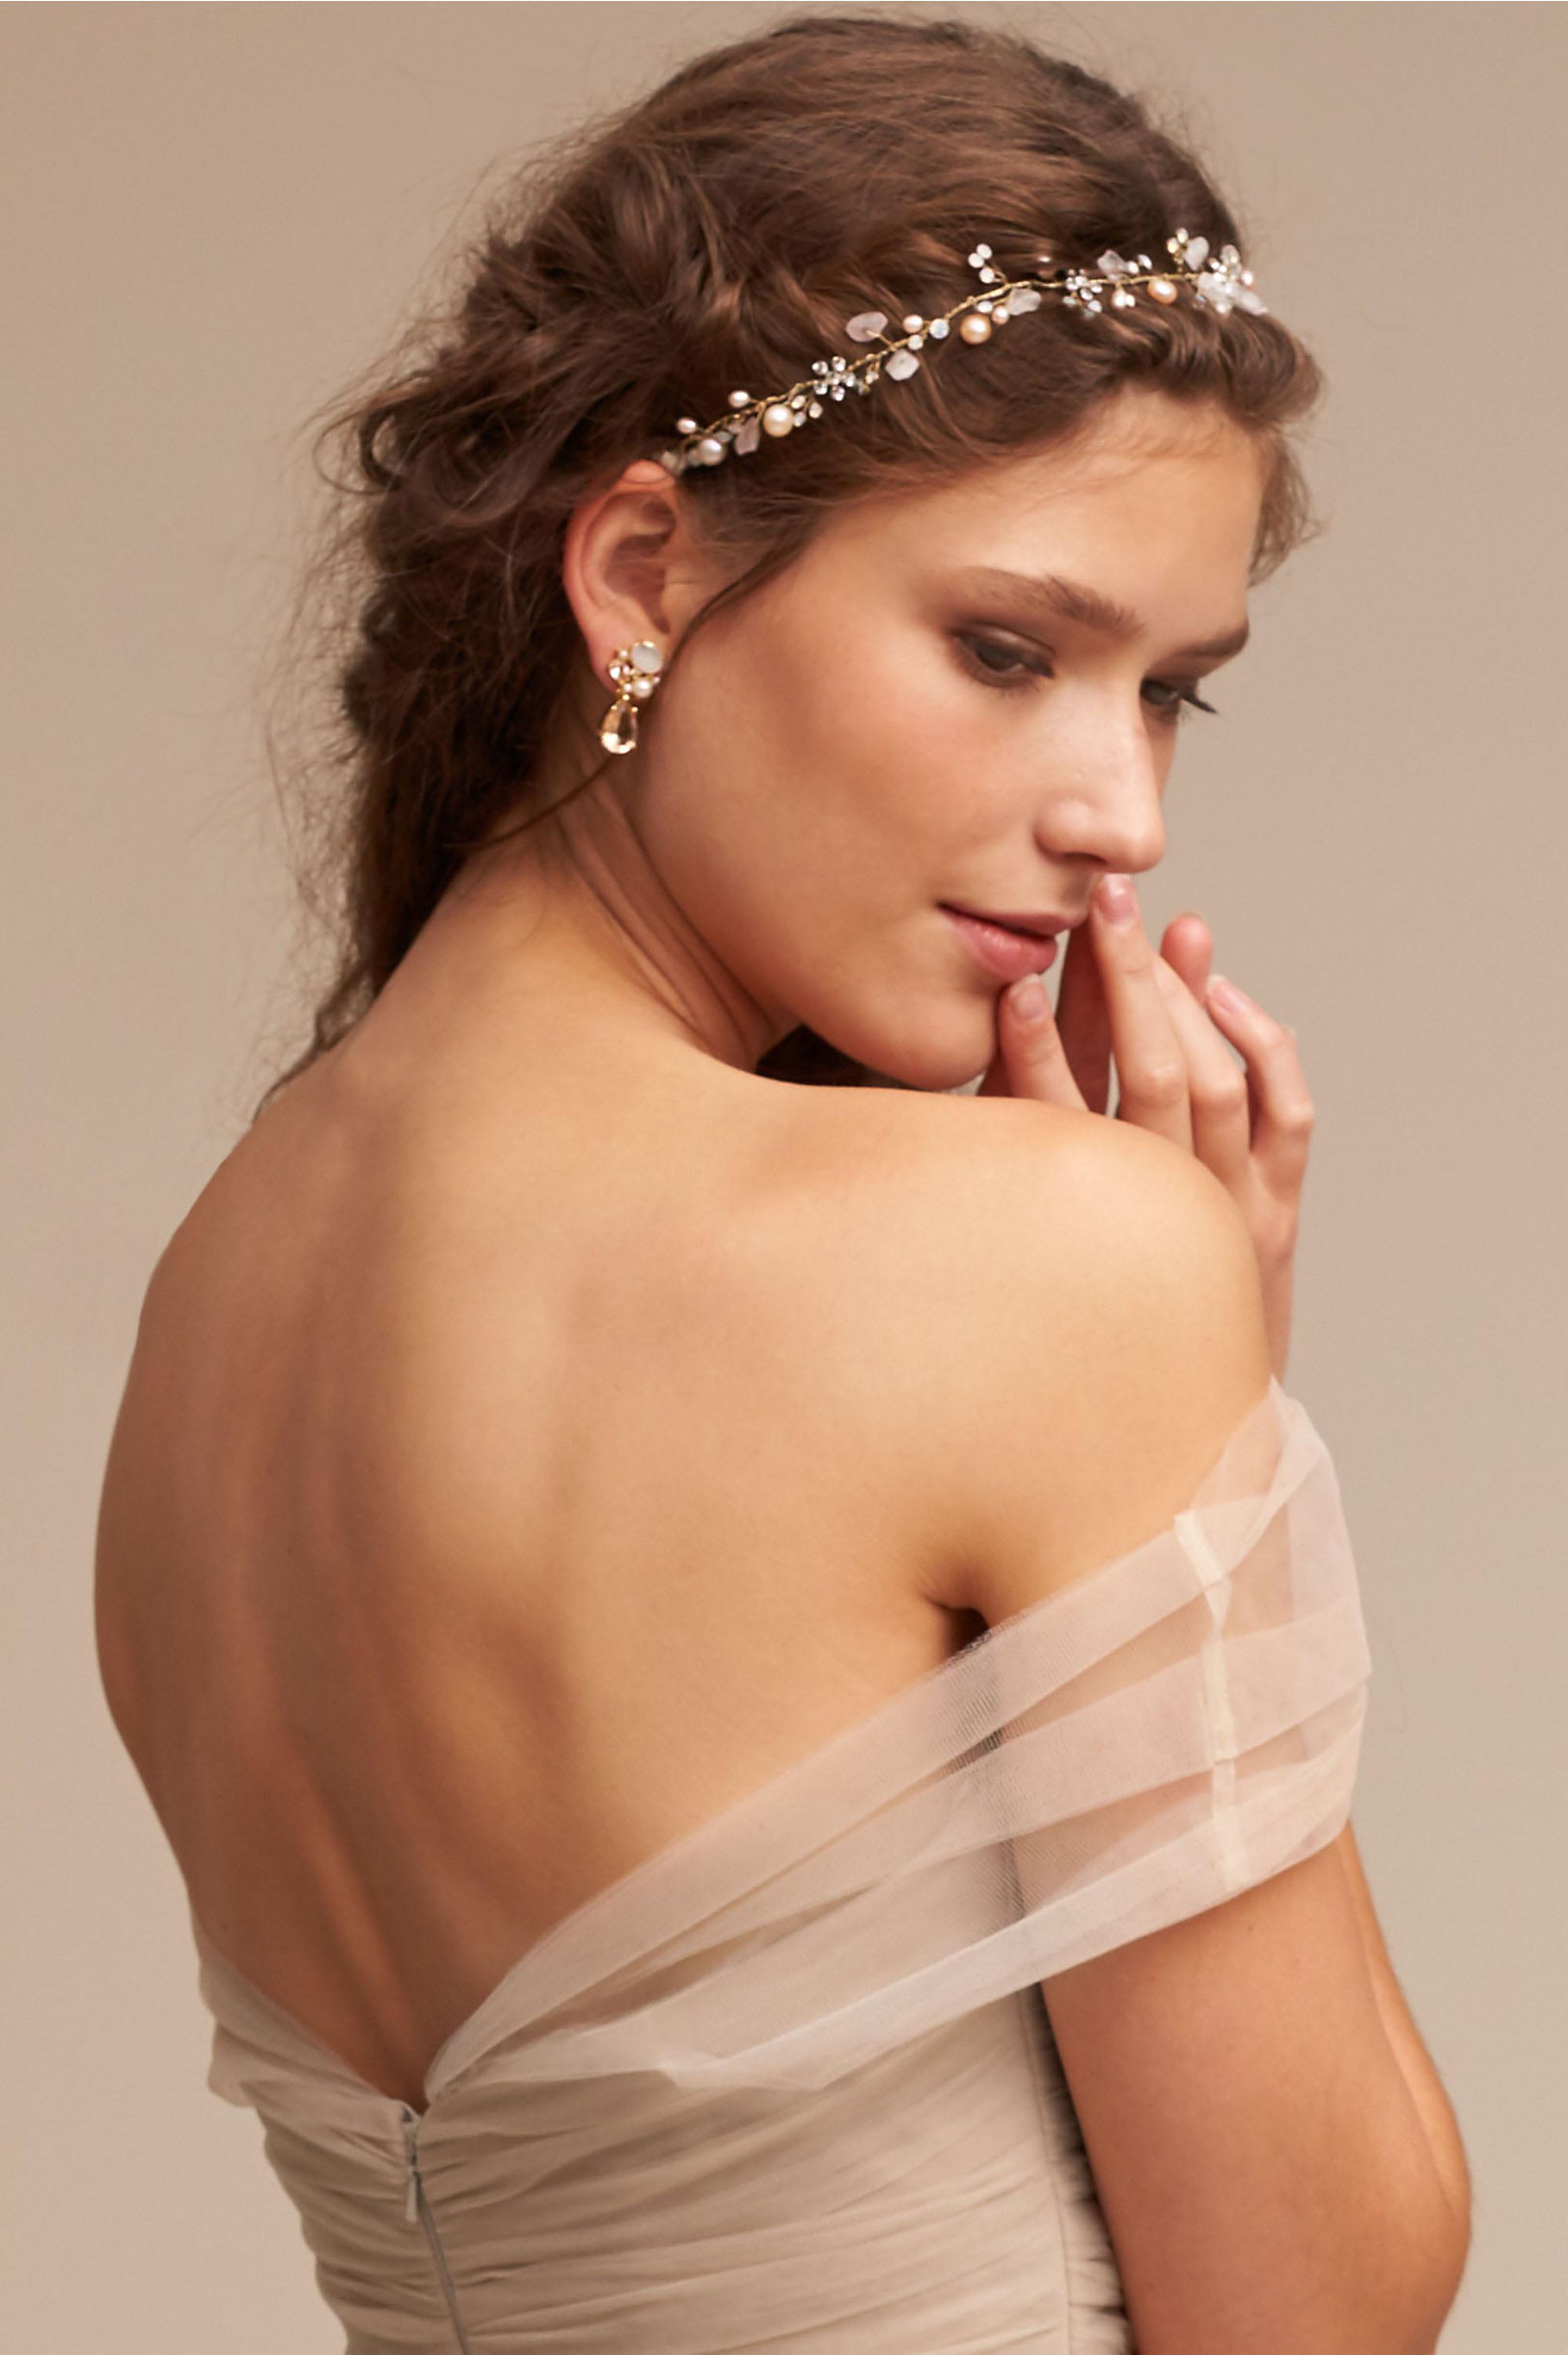 Hair Accessories For Wedding Guest - Rosales halo rosales halo